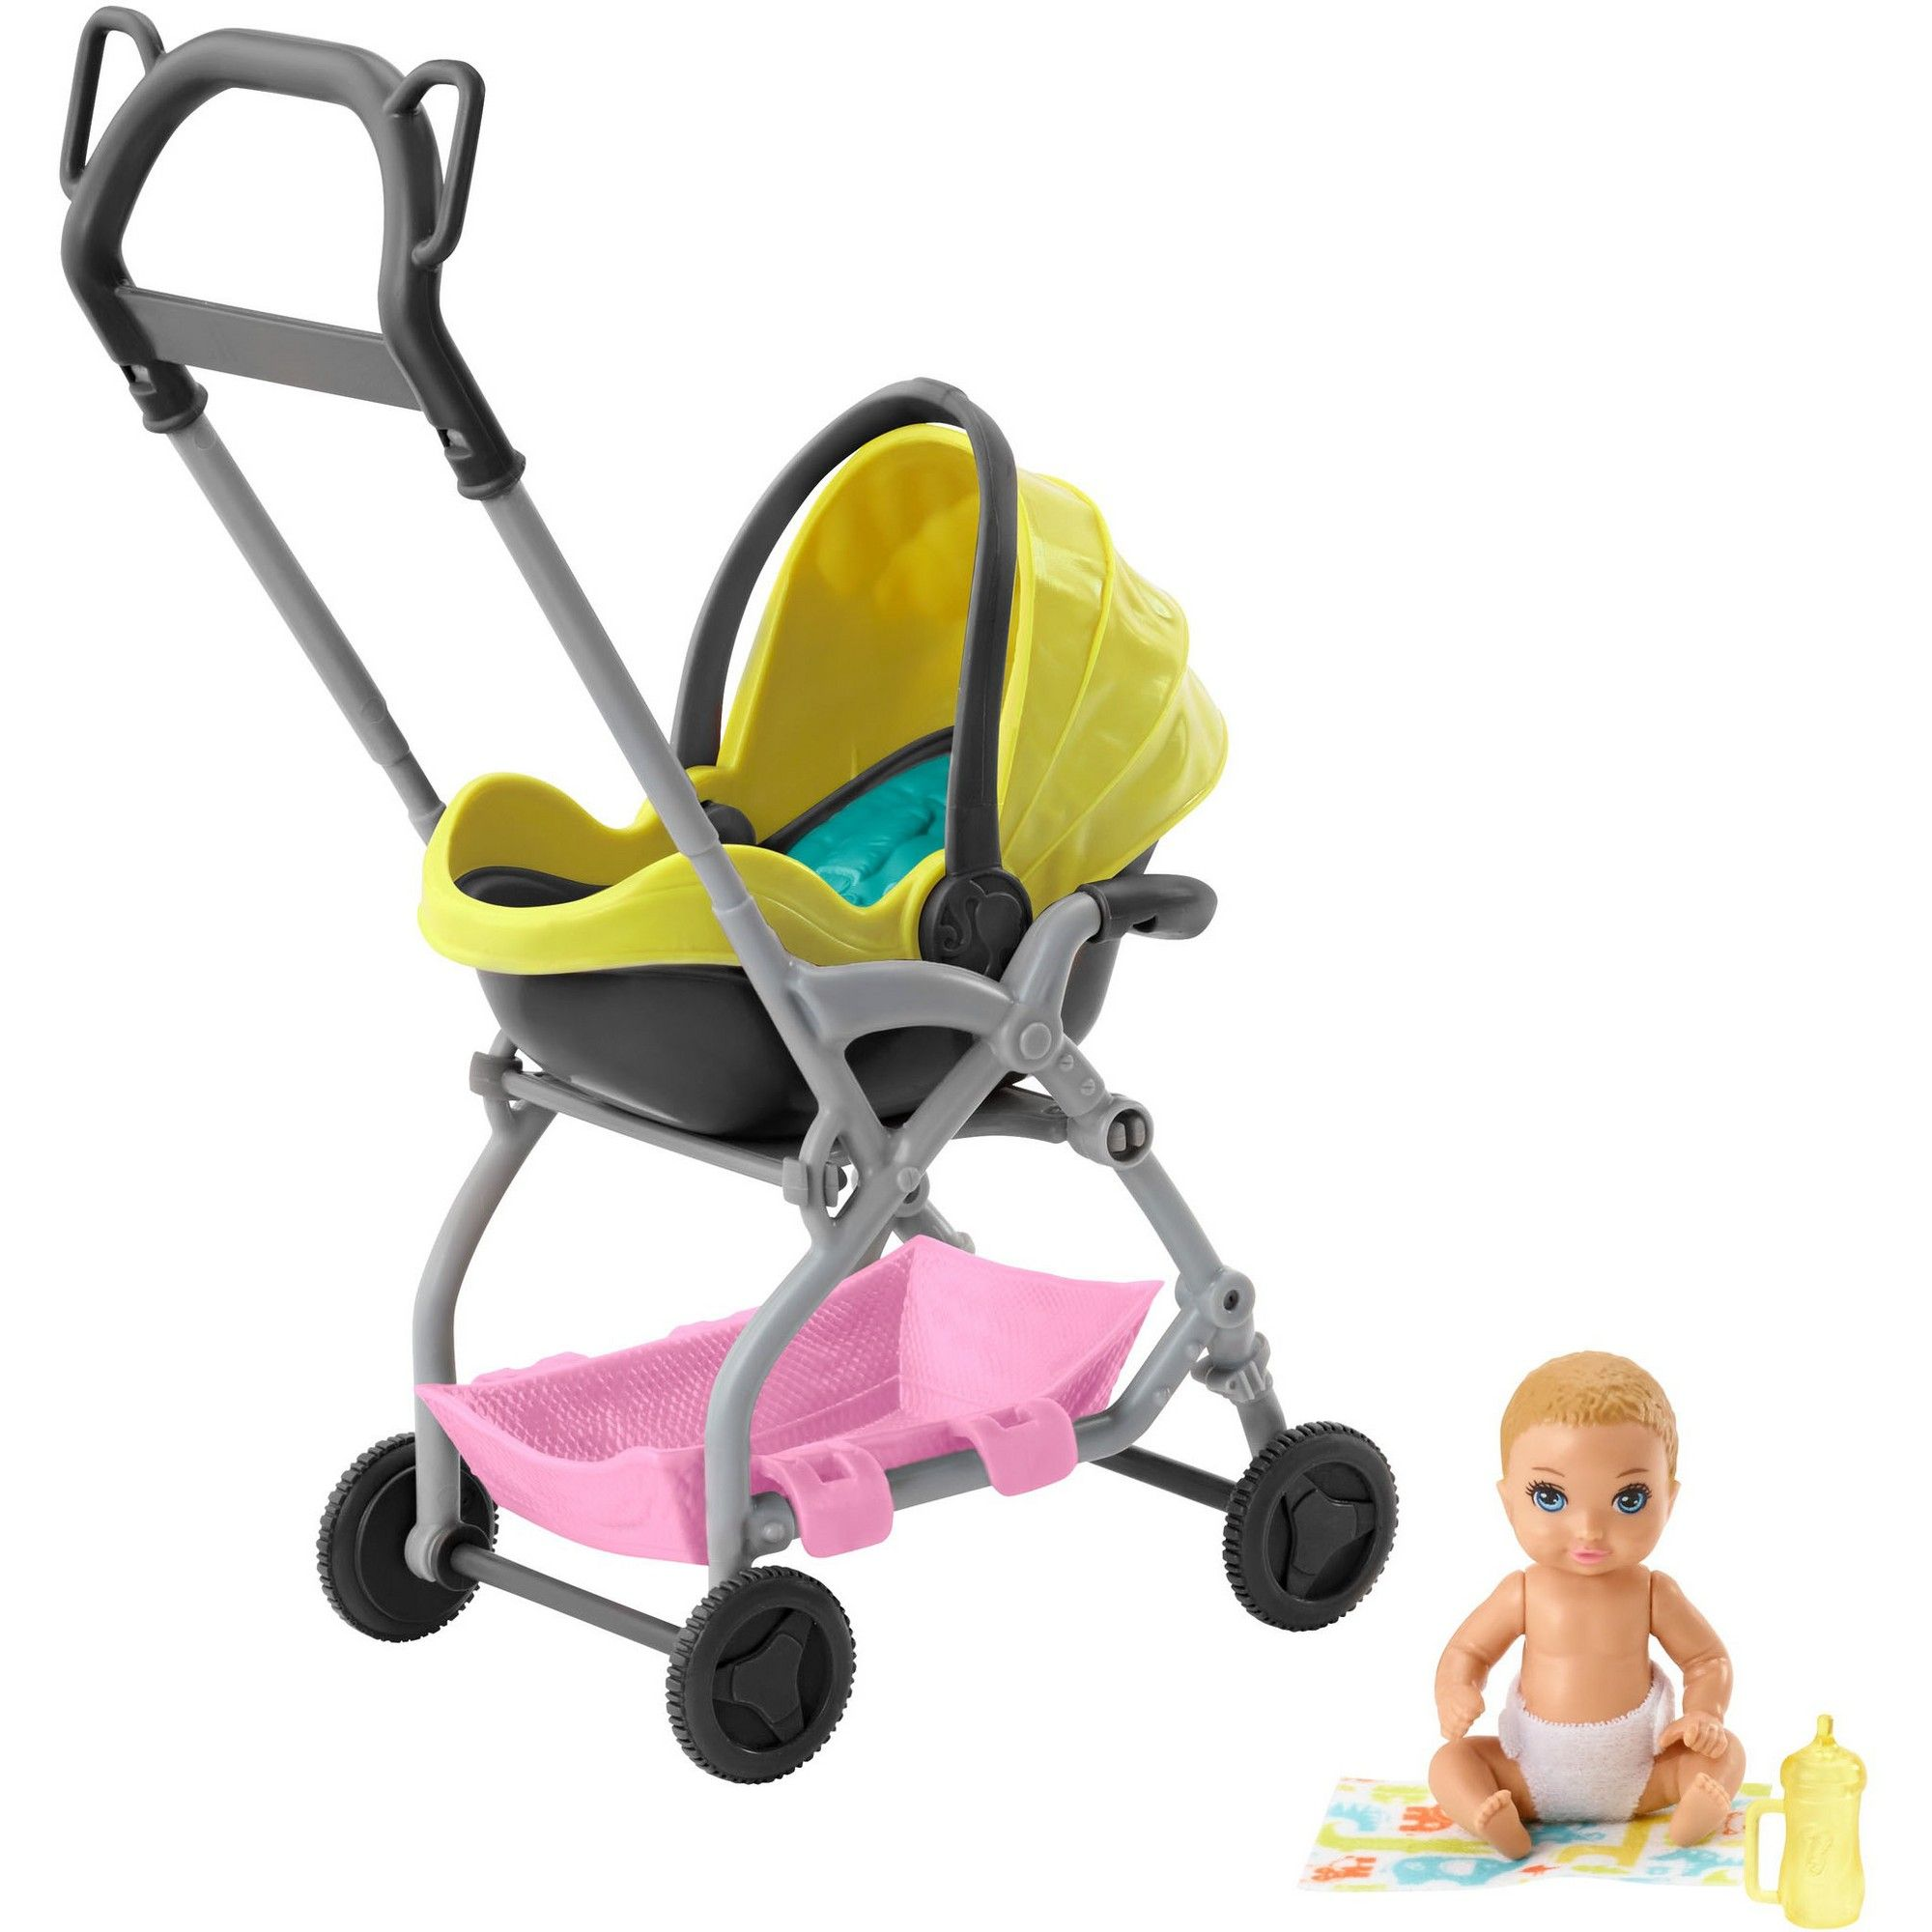 Barbie Skipper Babysitter Inc. Stroller and Baby Playset